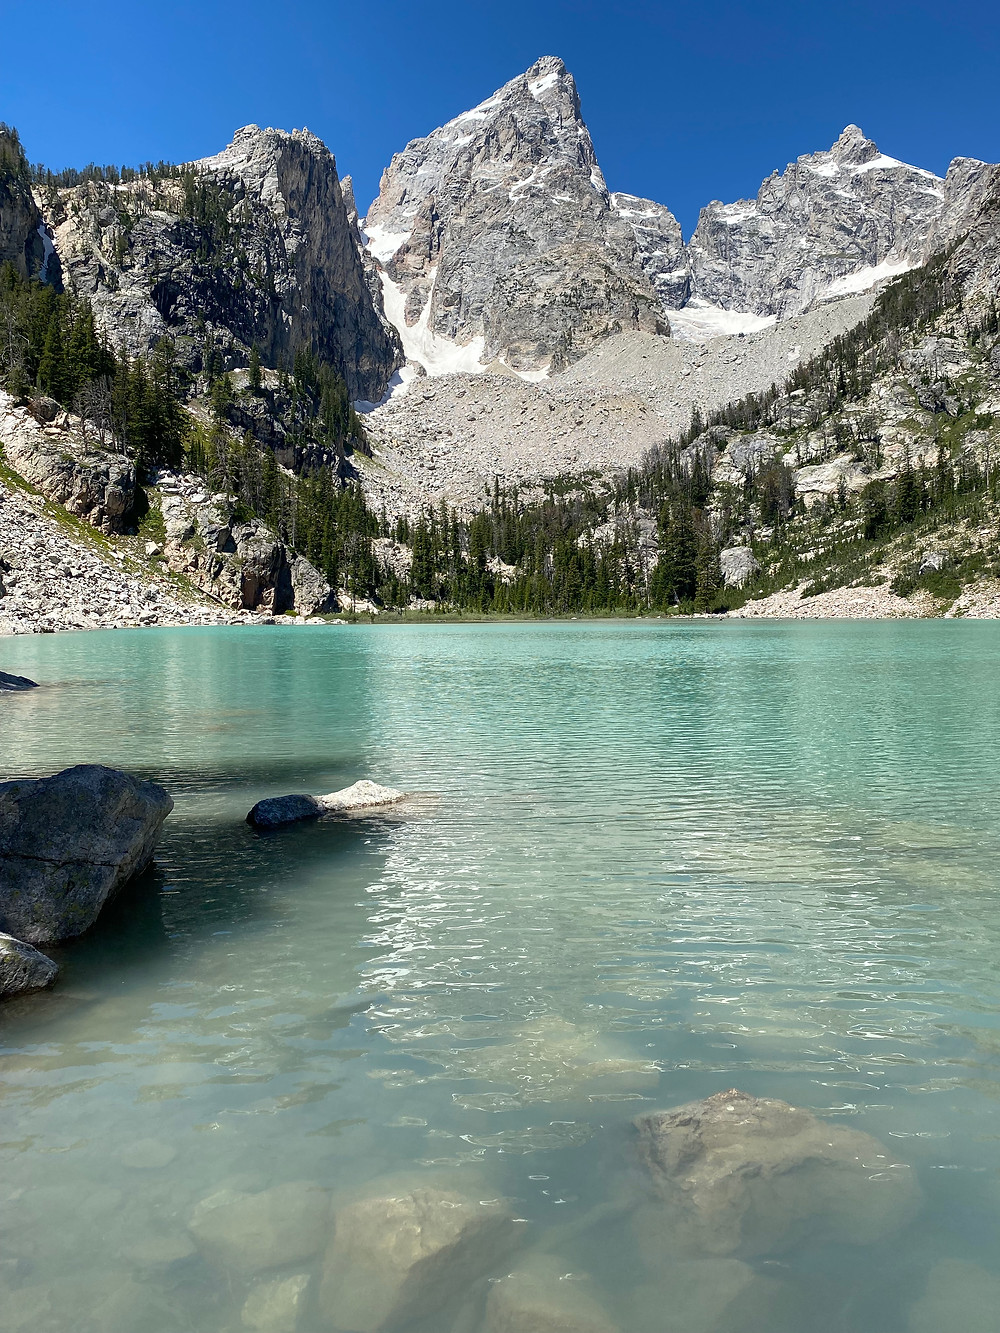 The blue-green waters of Delta Lake lay in stark contrast to the grey granite of the Grand Tetons and the blue skies overhead